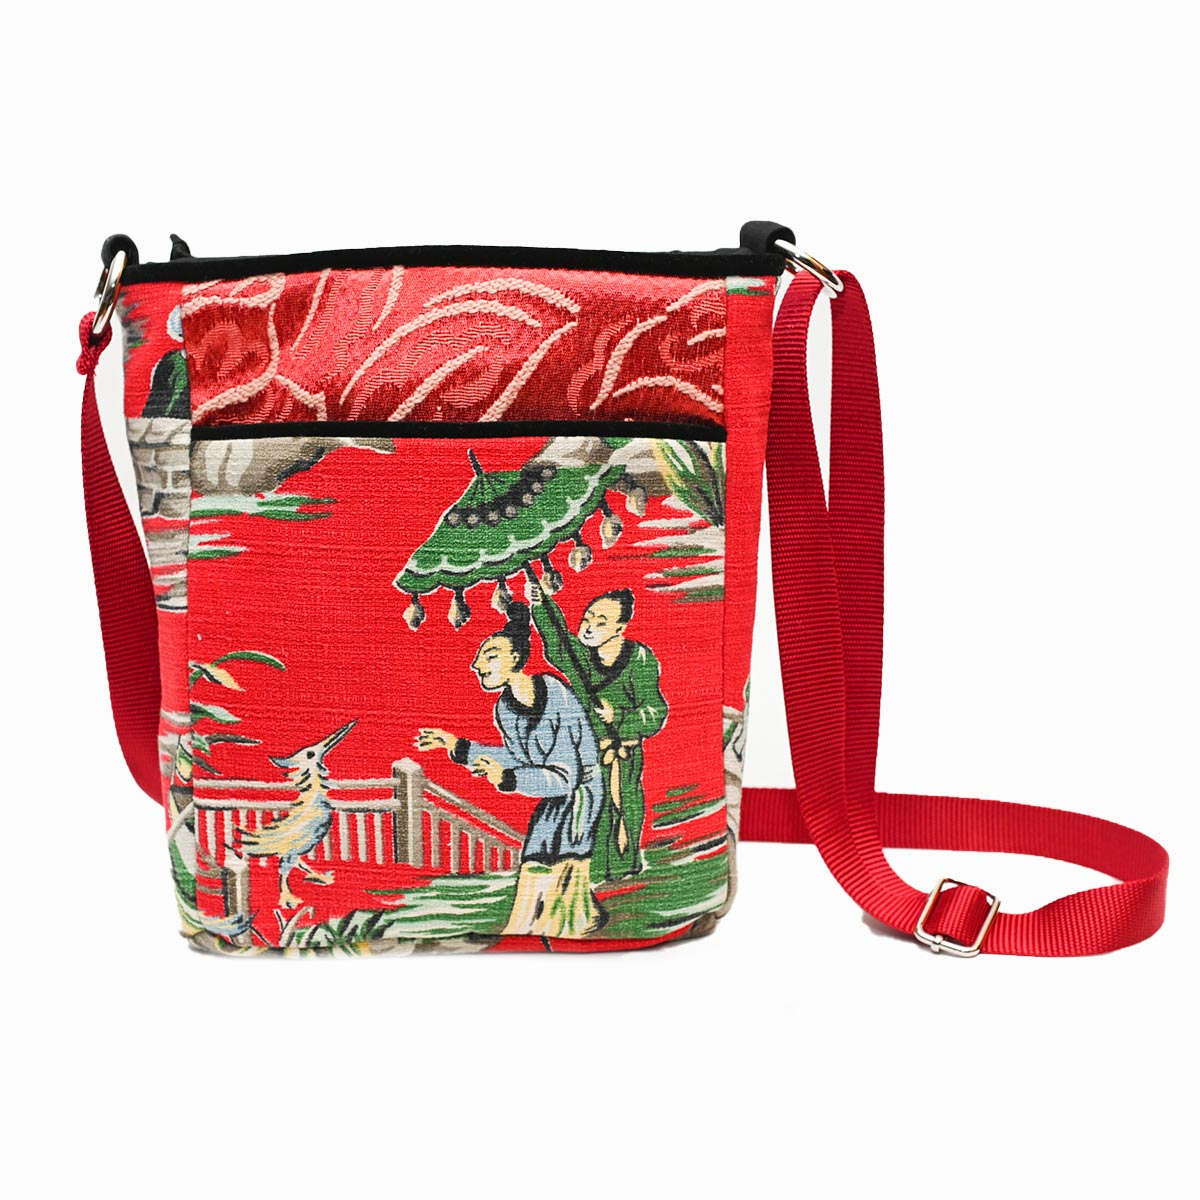 crossbody bag asian motif on cherry red DSC 6530